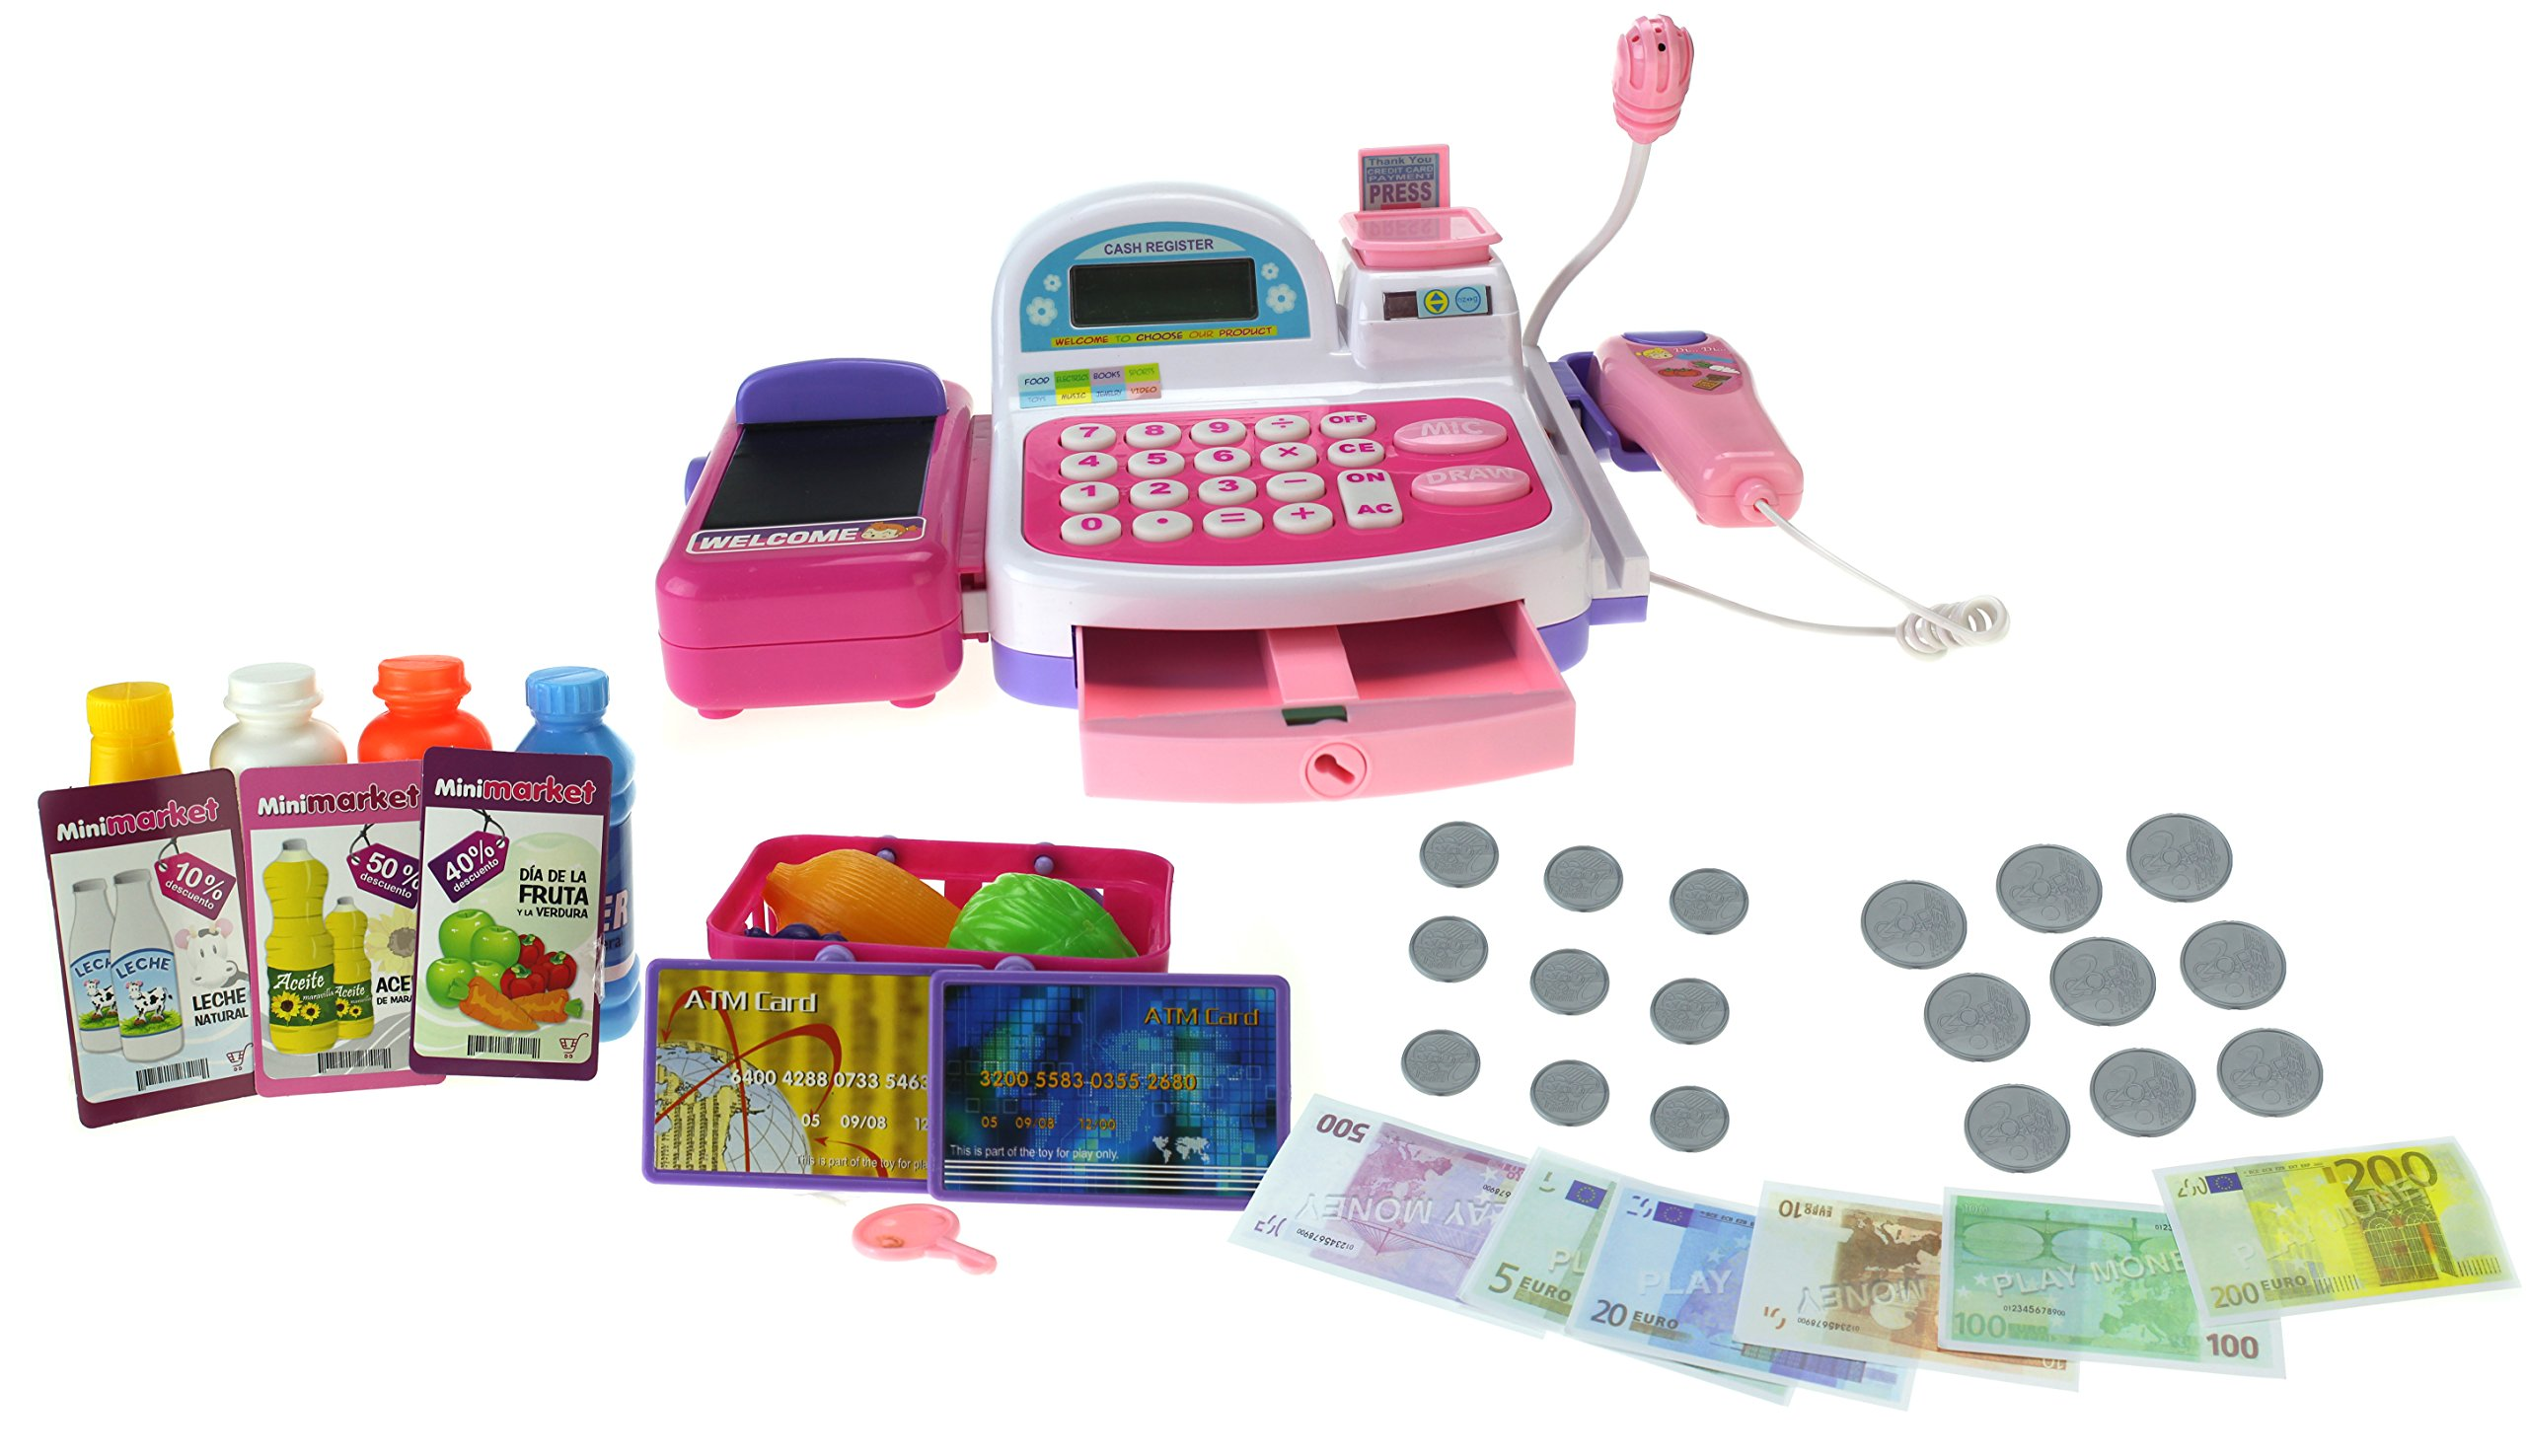 Mini Market Multi-Function Battery Operated Pink Toy Cash Register w/ Flashing Scanner, Working Mic, Knob Operated Belt, Credit Cards, Money, Basket, Food, Lights & Sounds